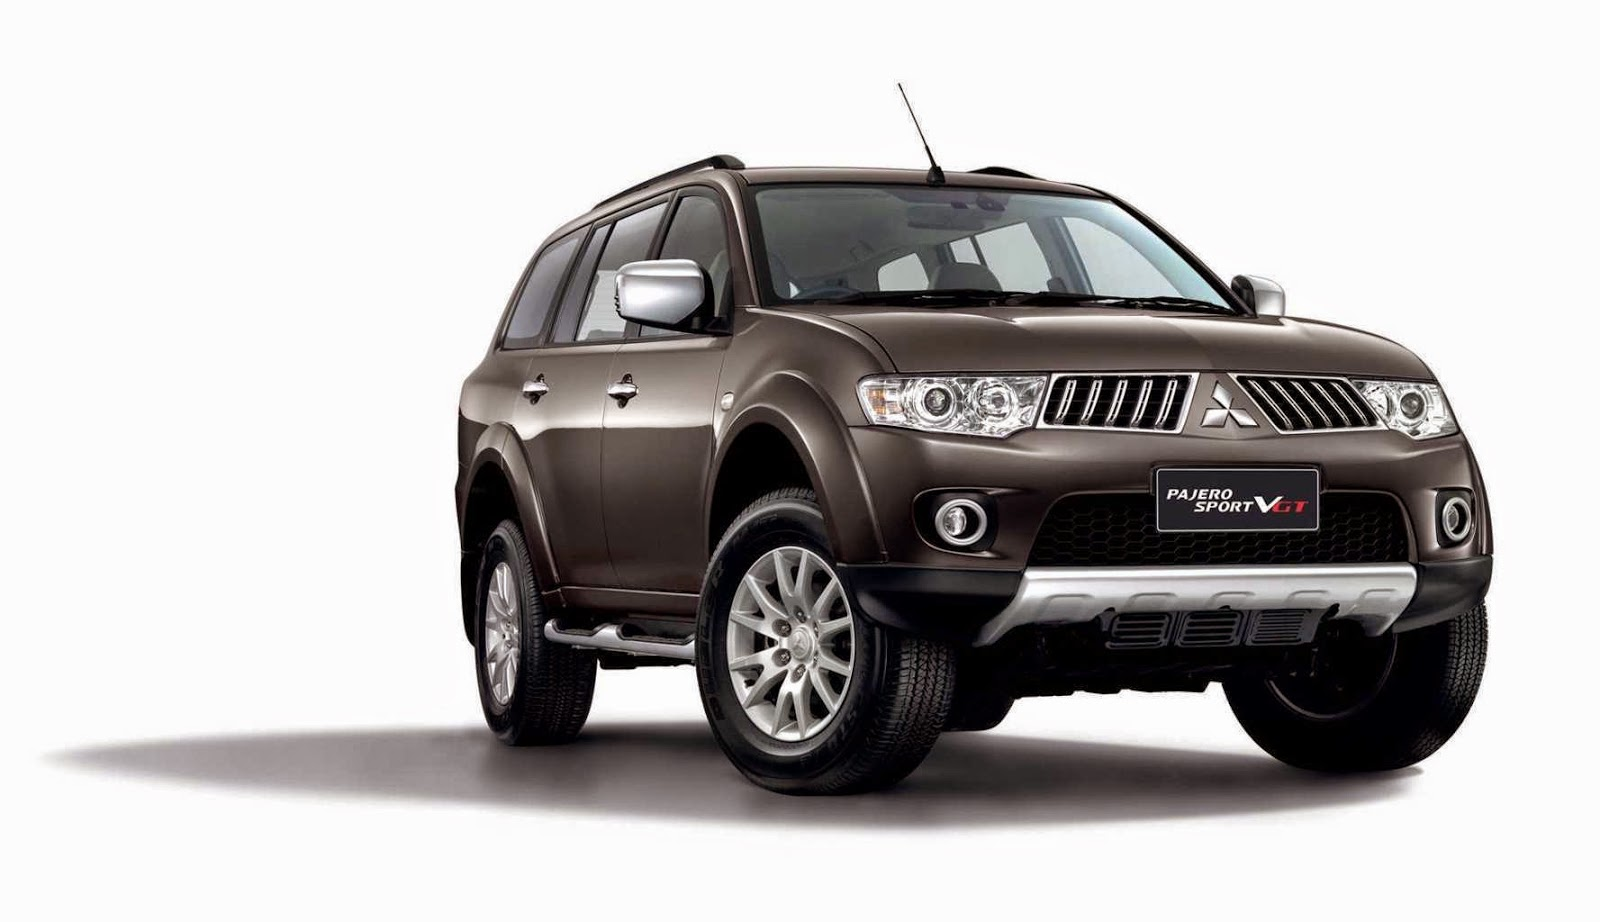 road crazz mitsubishi pajero sport full review specs price details etc. Black Bedroom Furniture Sets. Home Design Ideas